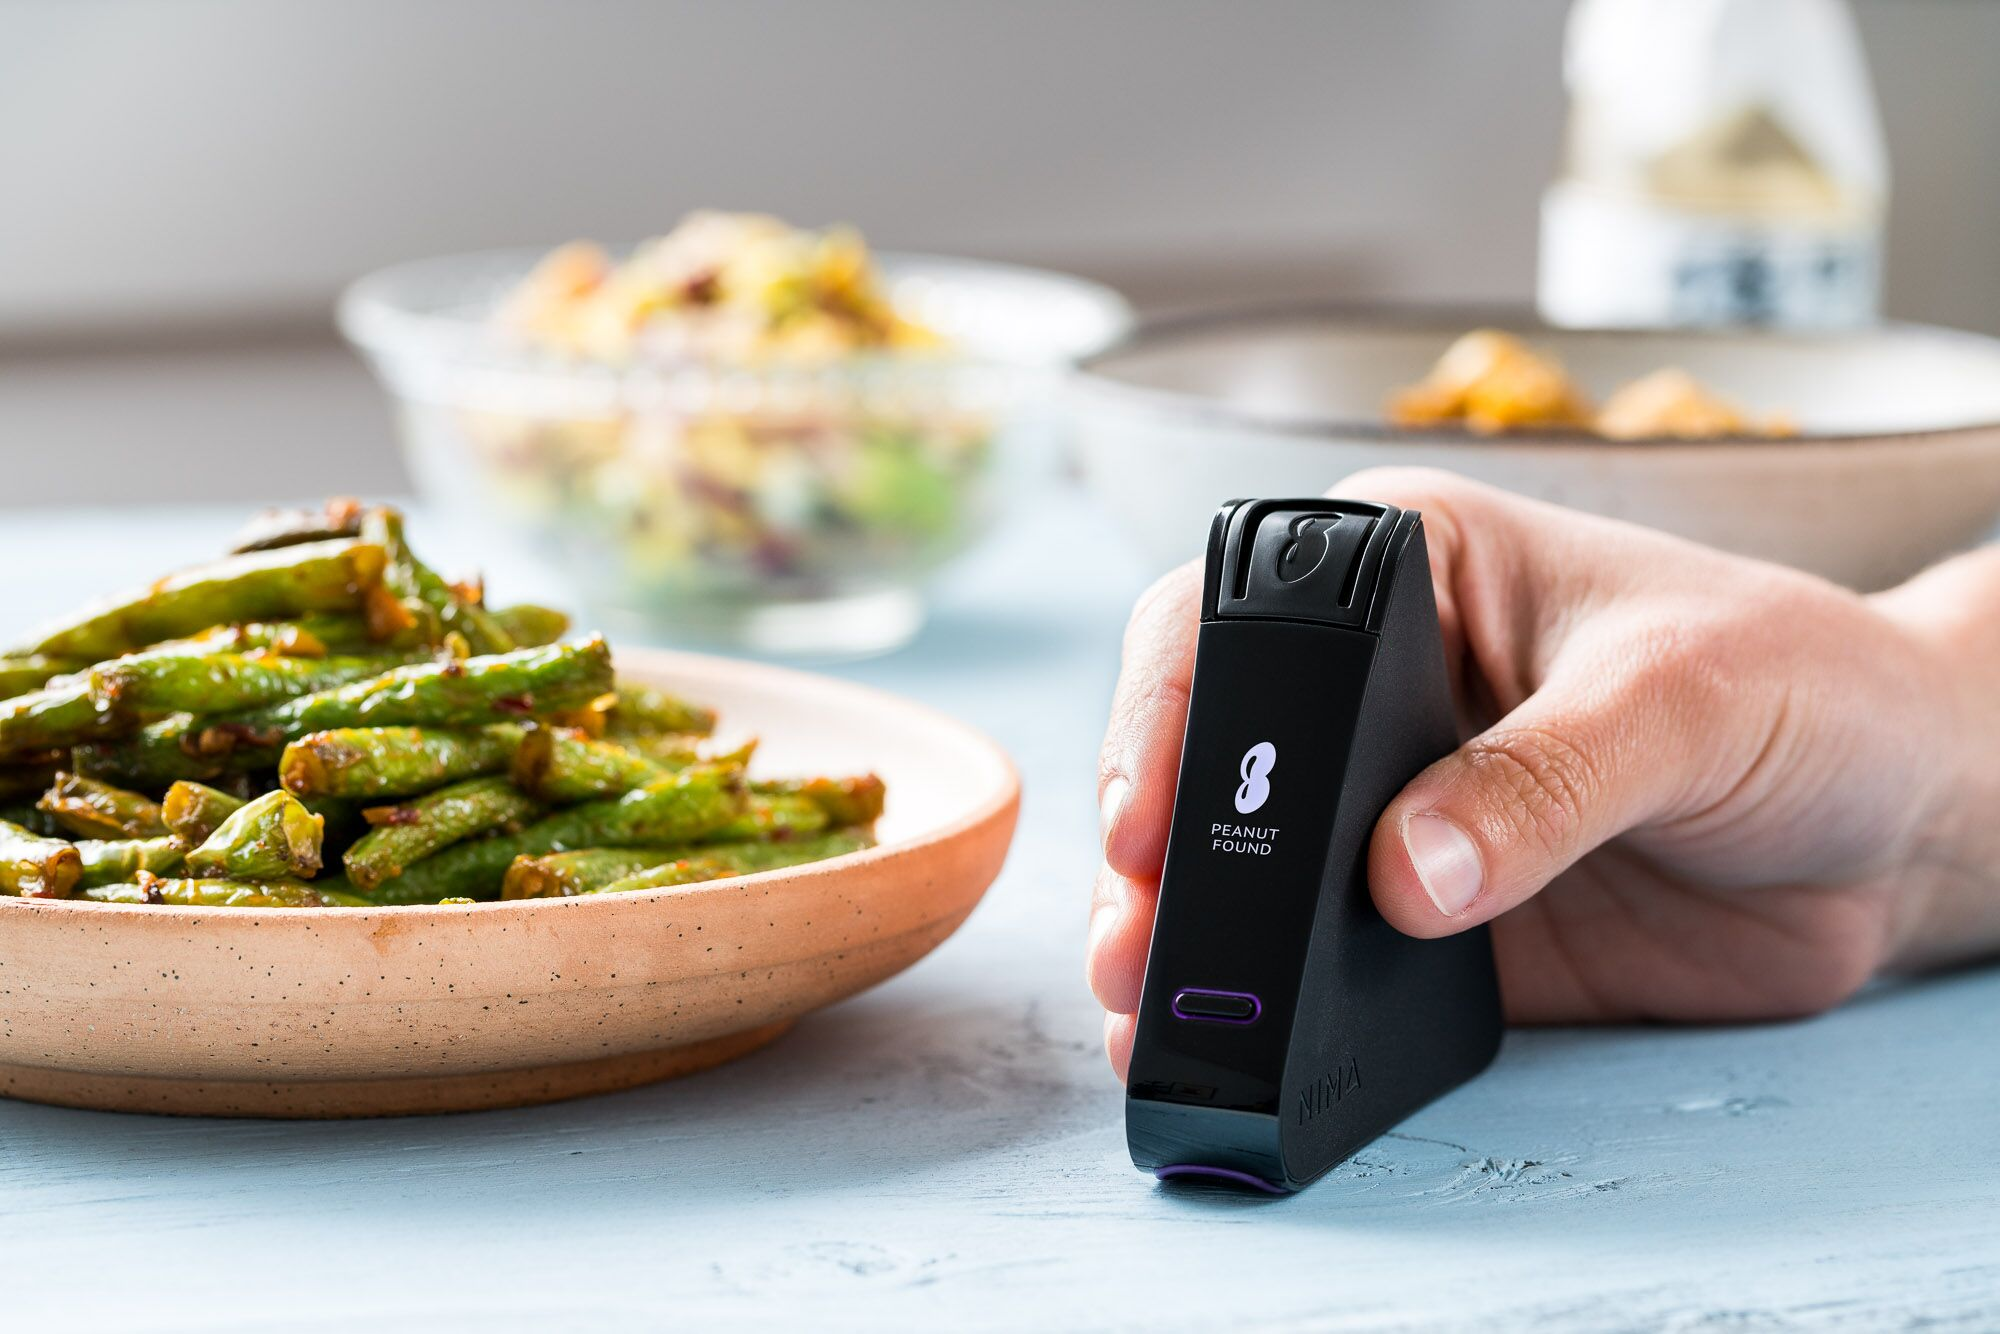 Nima launches food sensor to detect peanuts 3D8DKv6w